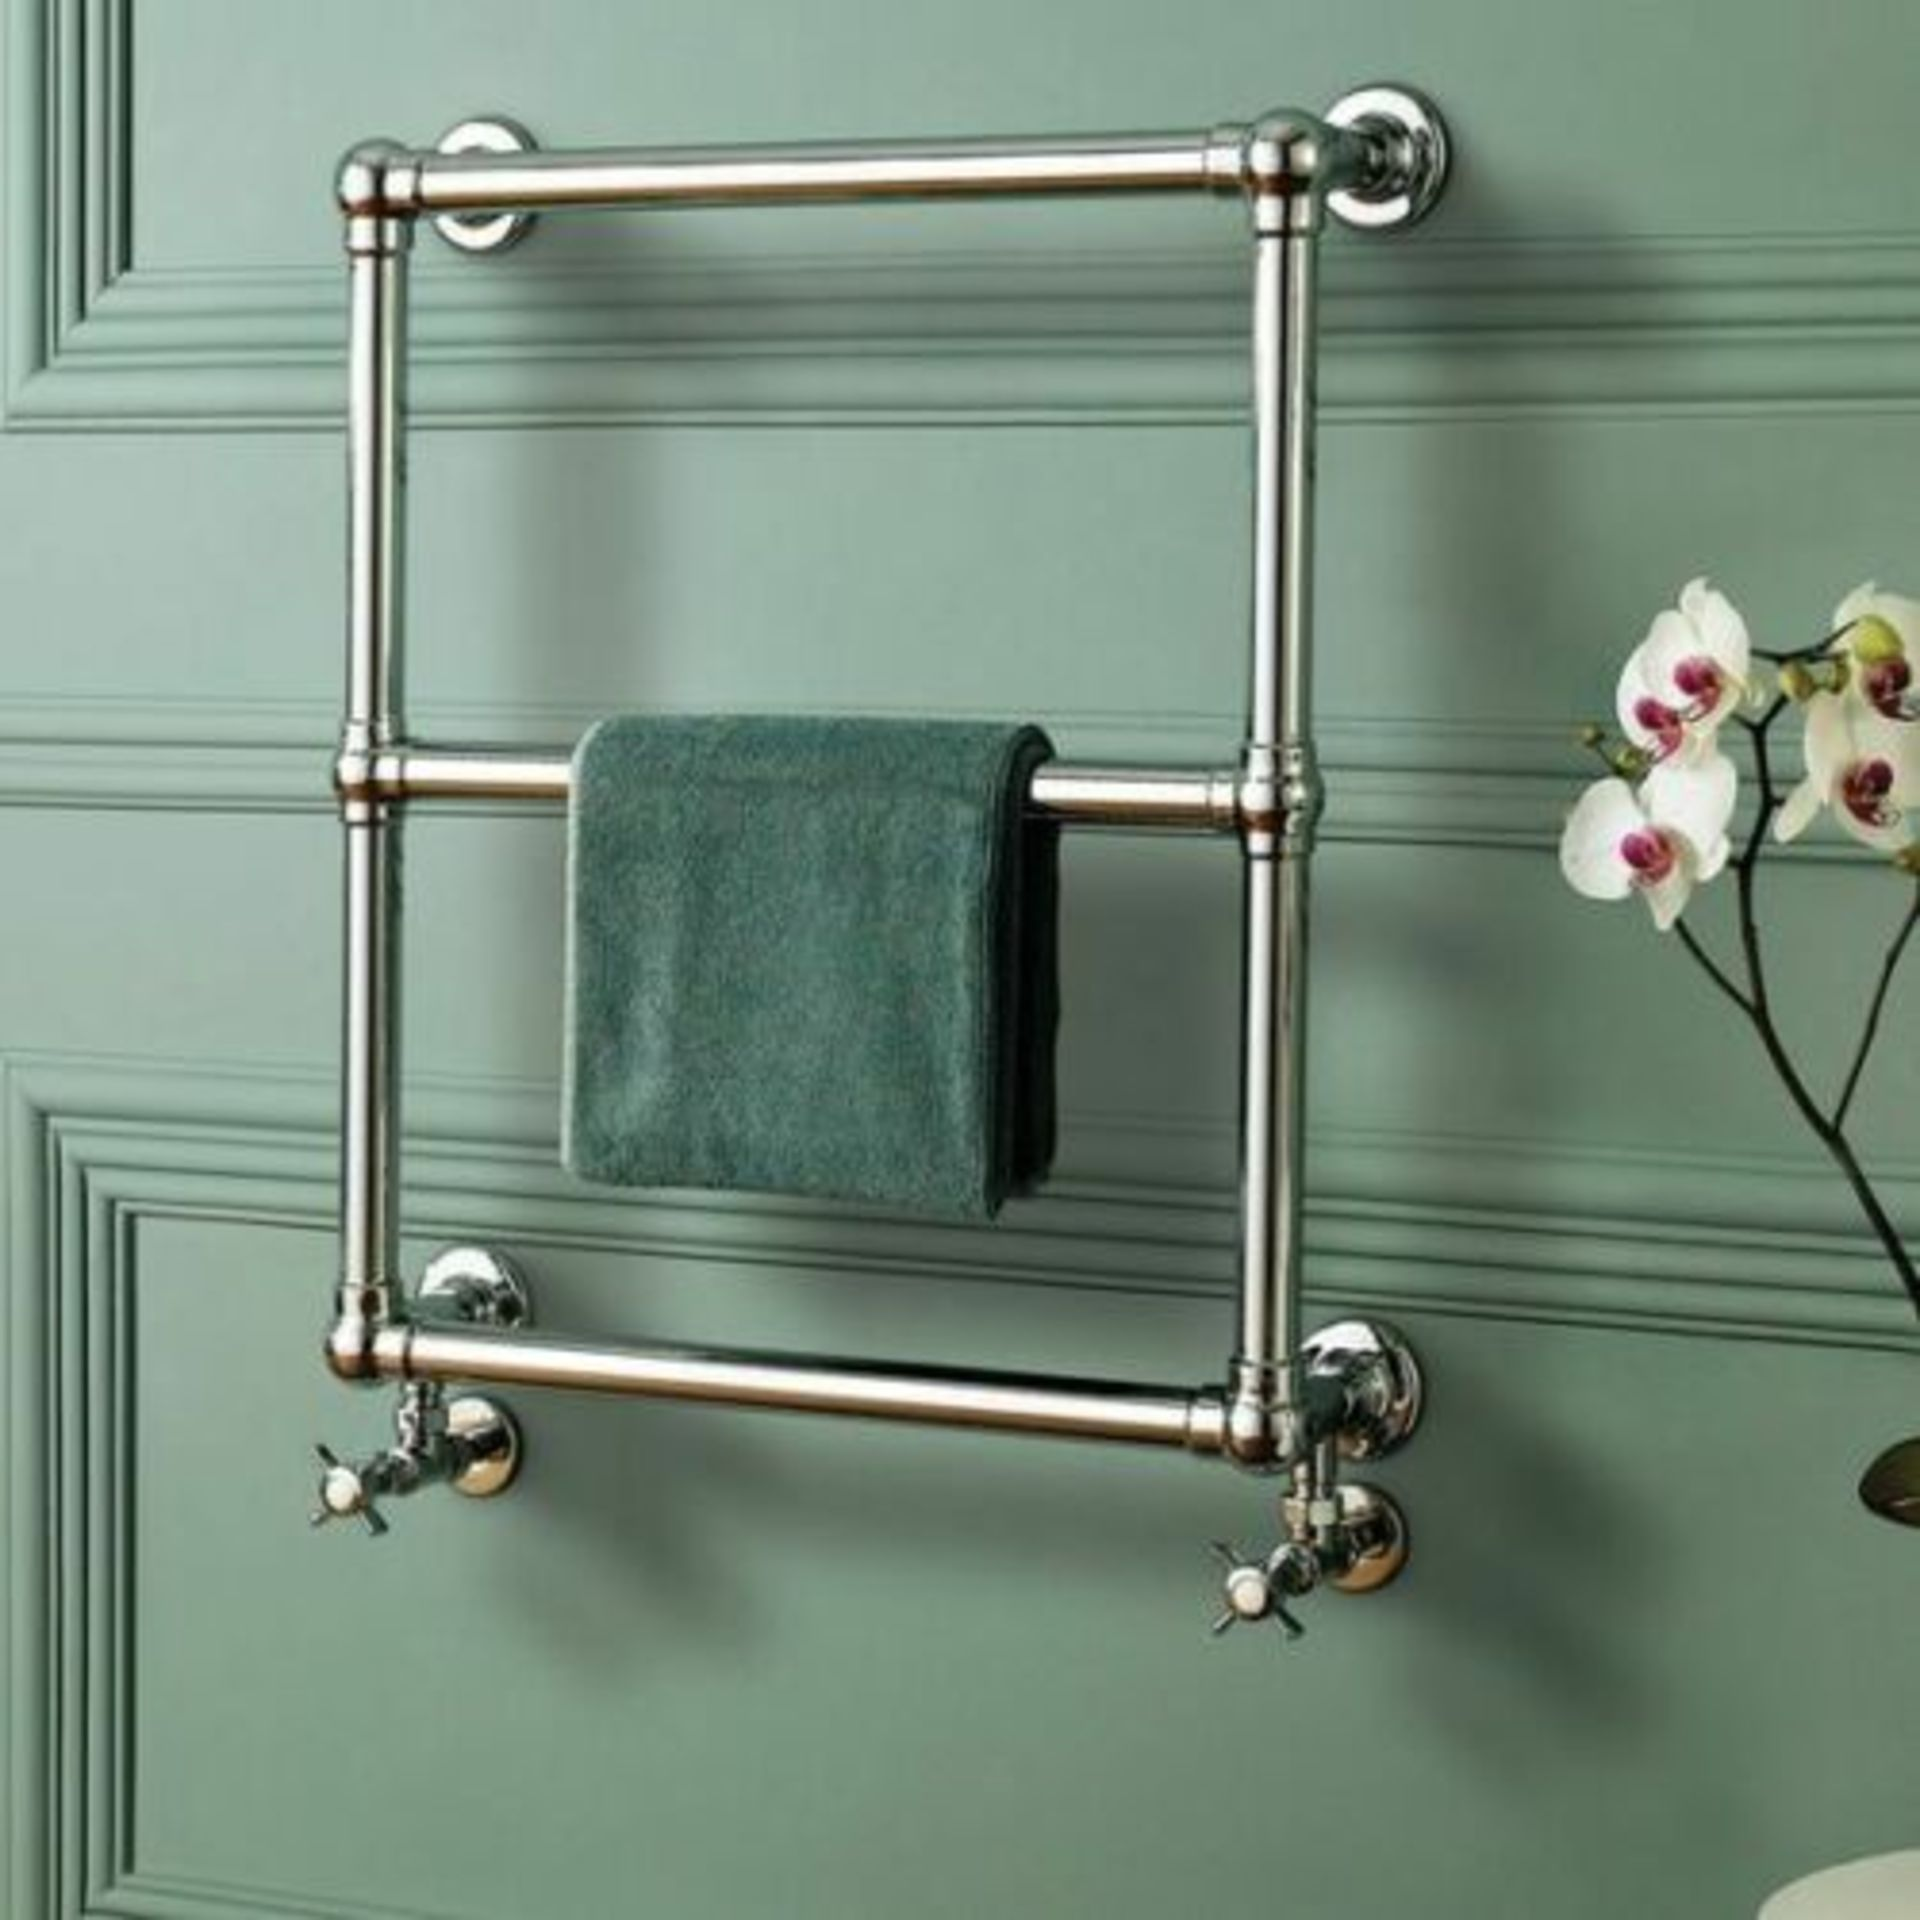 Lot 19 - Fervent Traditional Ball Jointed Towel Radiator 686mm x 600mm Brand new, factory sealed packaging.